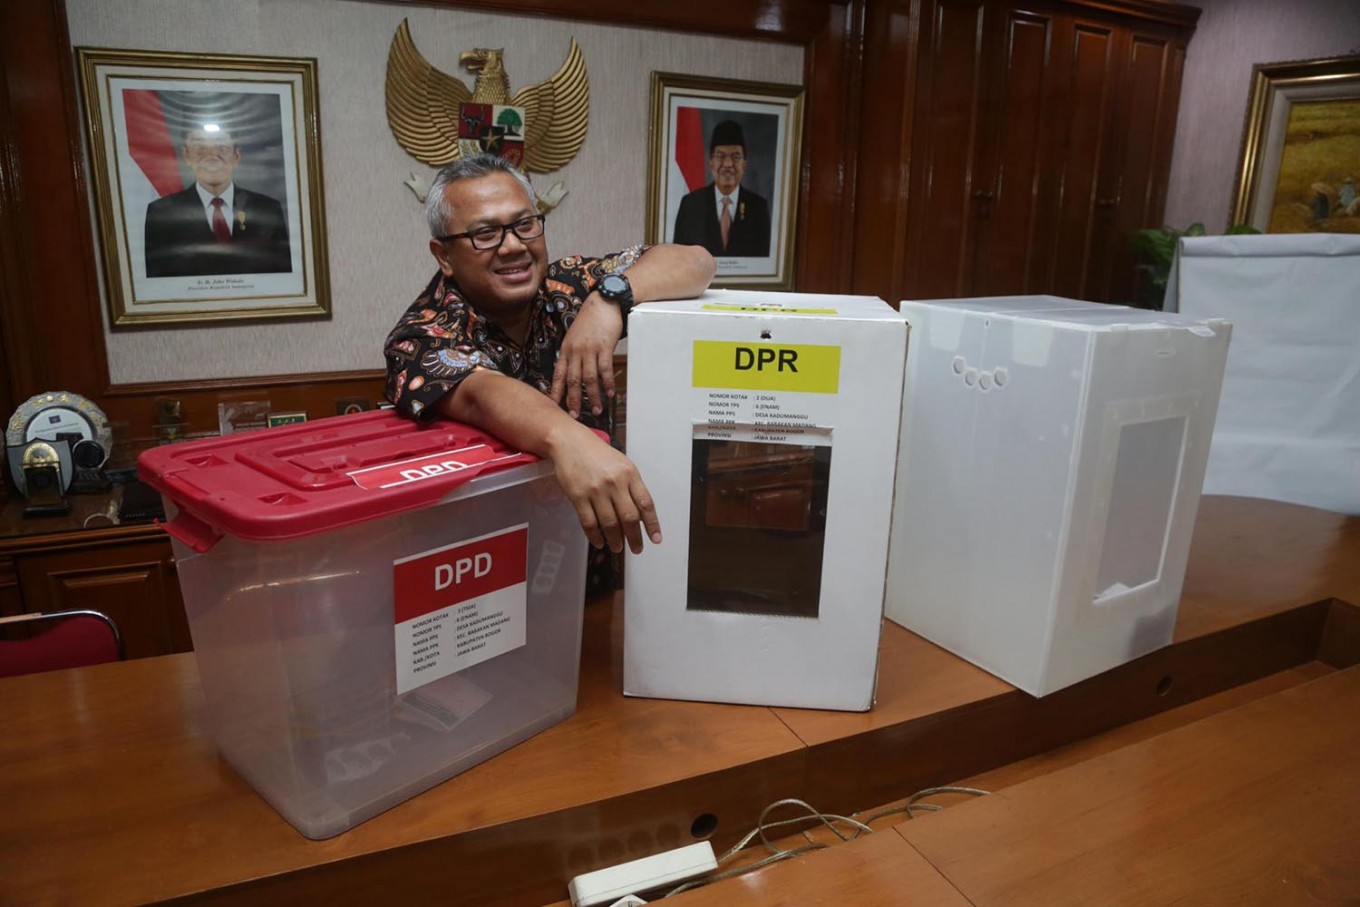 Against KPU, Bawaslu allows ex-graft convicts to run in 2019 elections